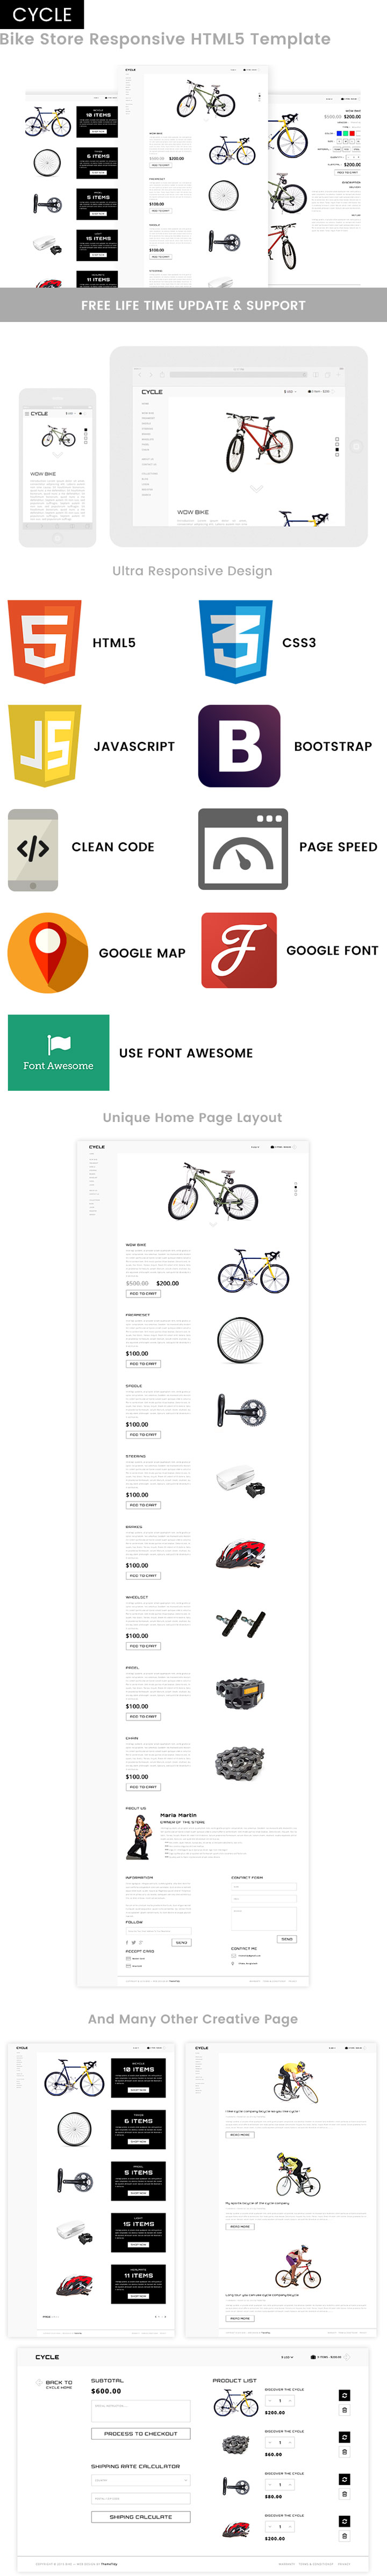 themetidy-Cycle-Bike-Store-Responsive-HTML5-Business-Template-description-image